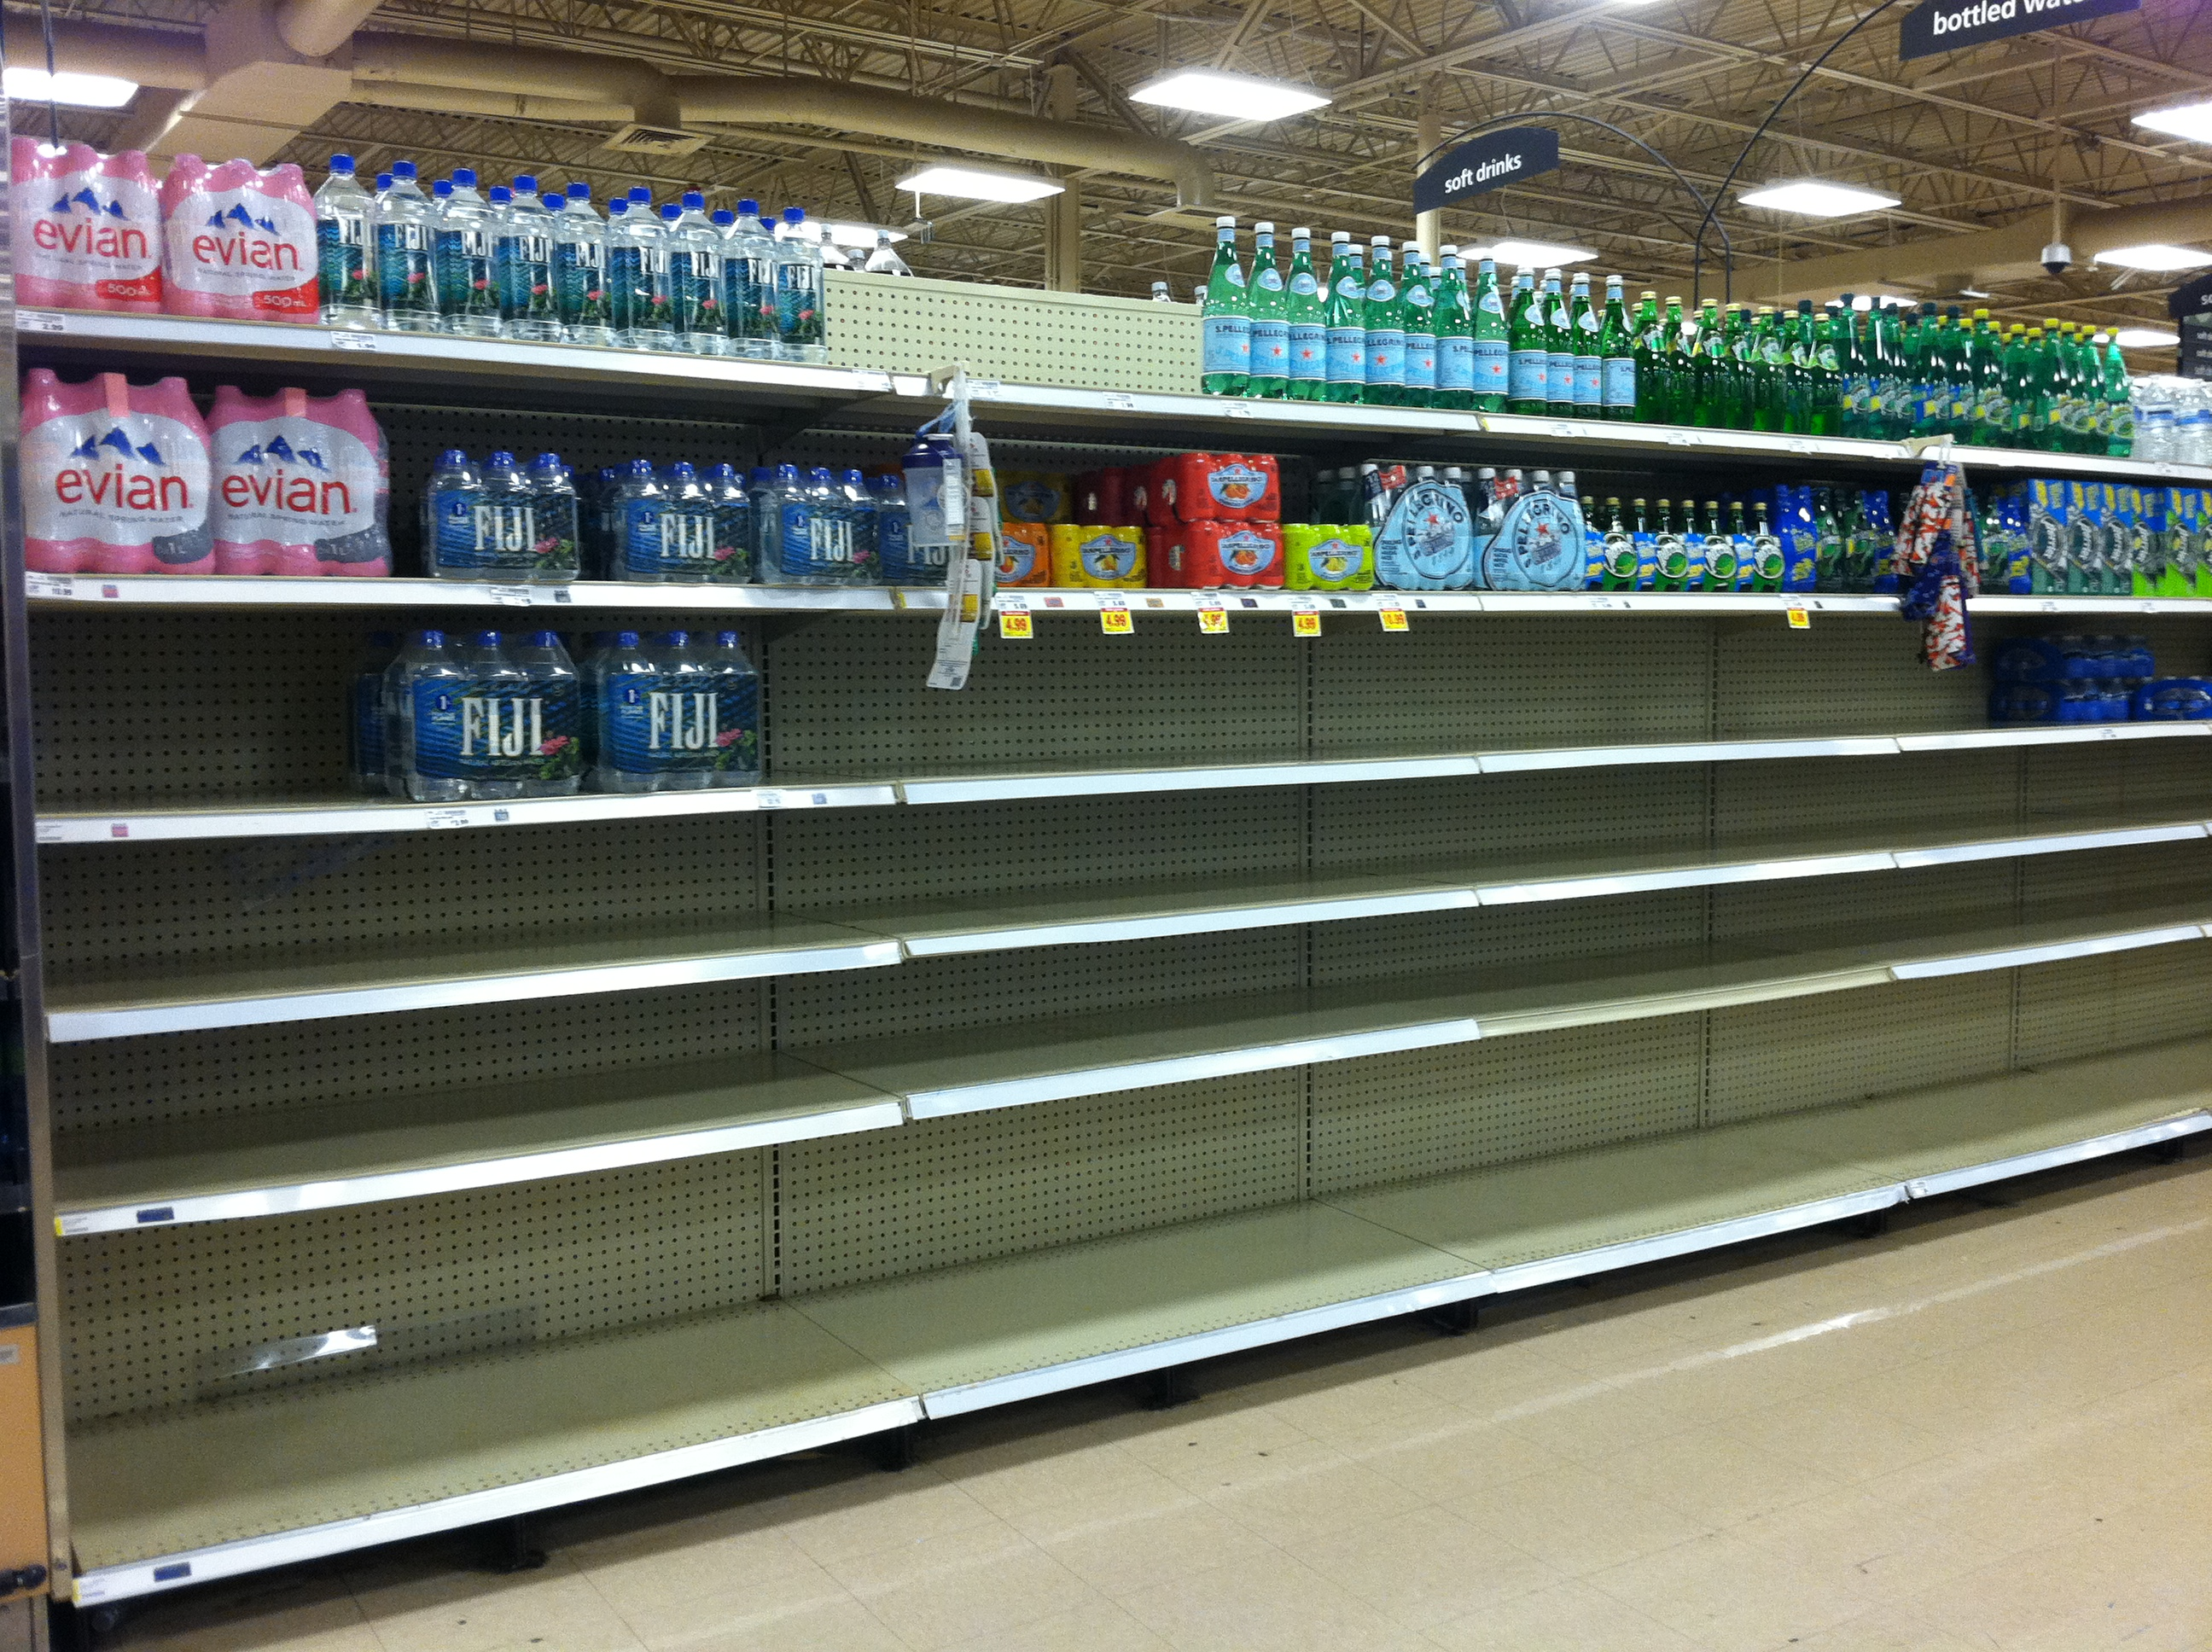 Kroger Troy Ohio >> City of Toledo issues notice assuring public that its ...